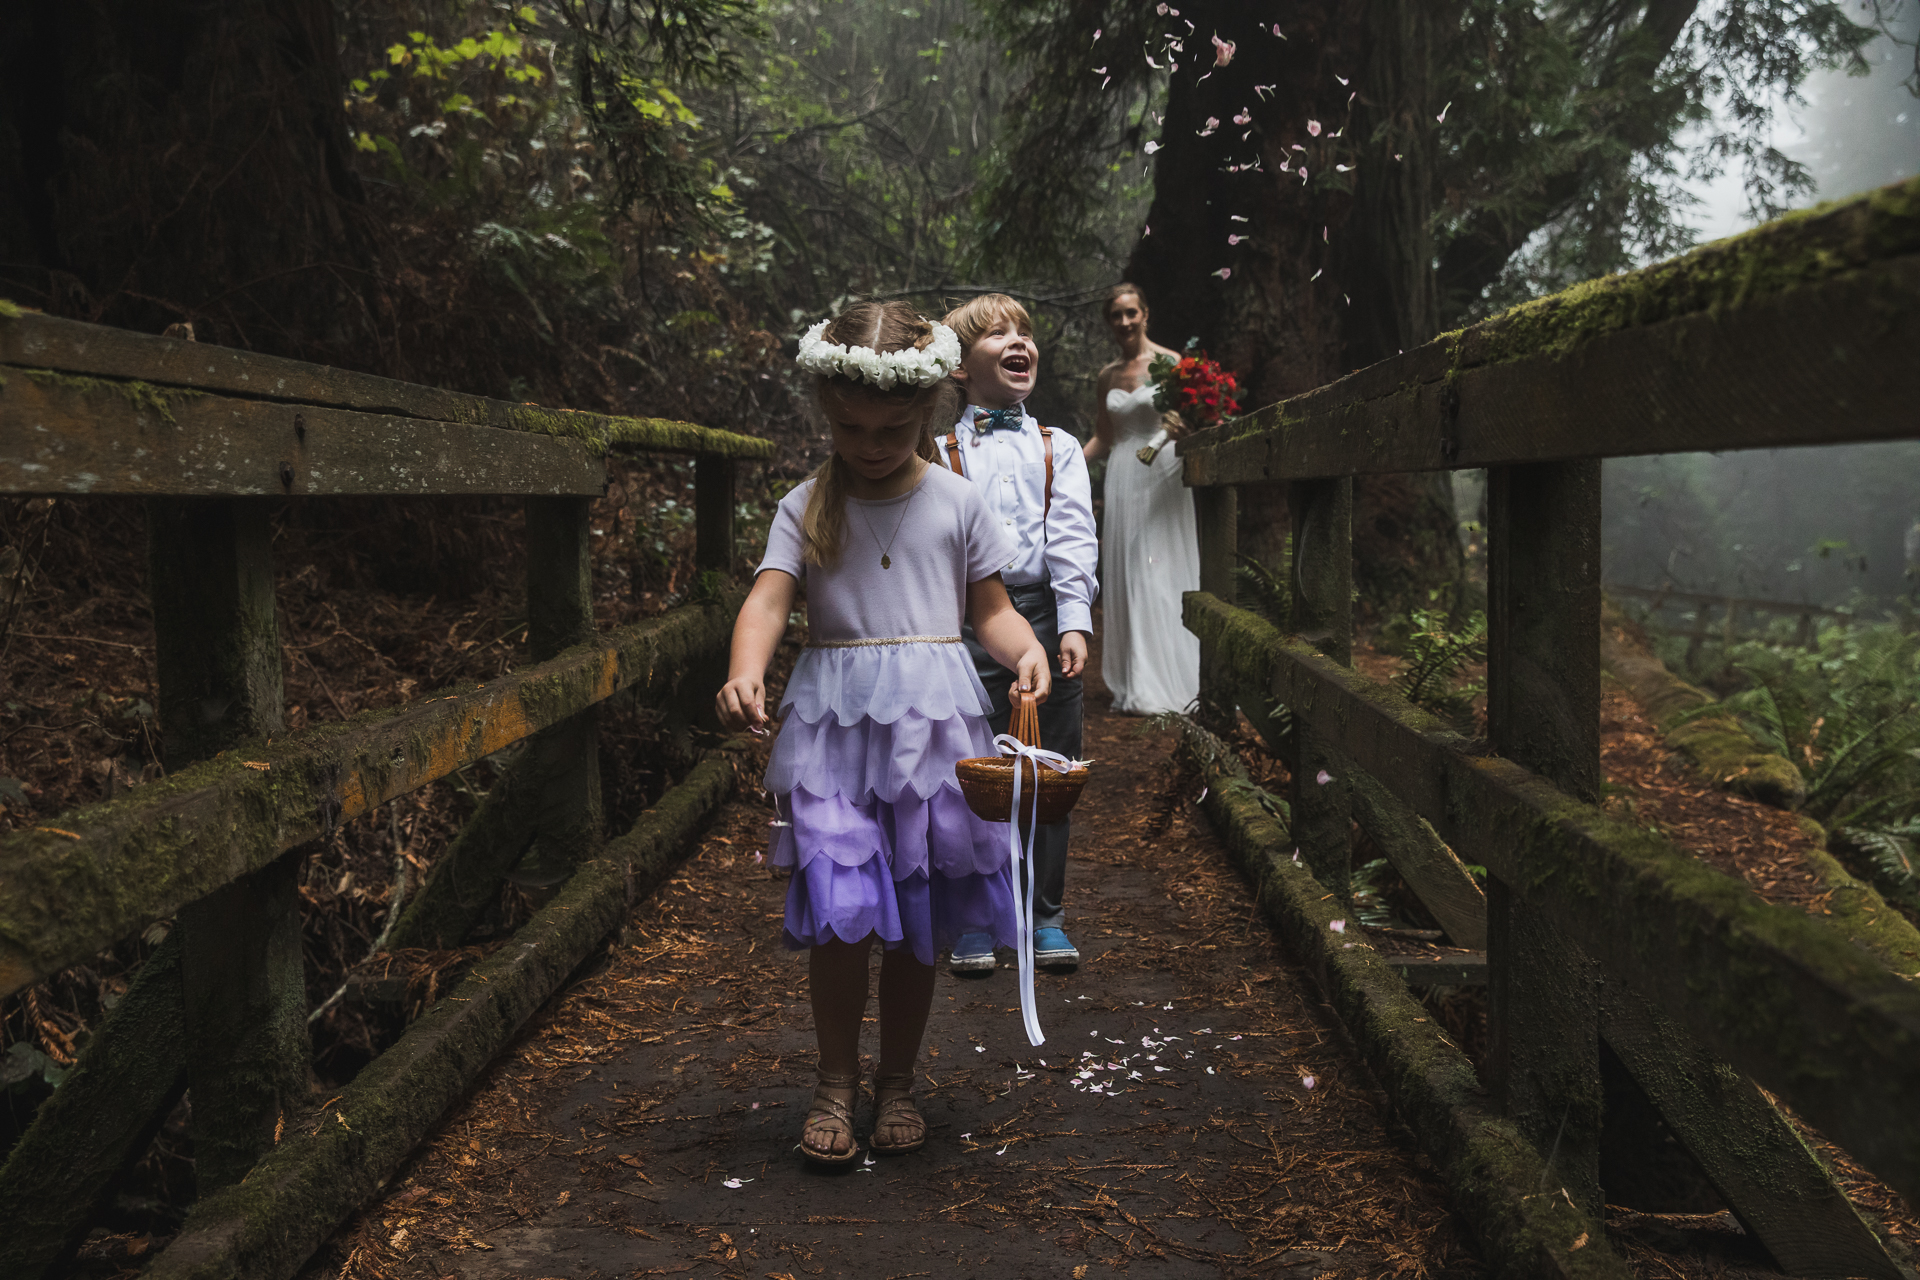 Redwood Forest - Stinson Beach CA Wedding Photos | The flower girl and ring bearer walk across an old mossy wooden bridge